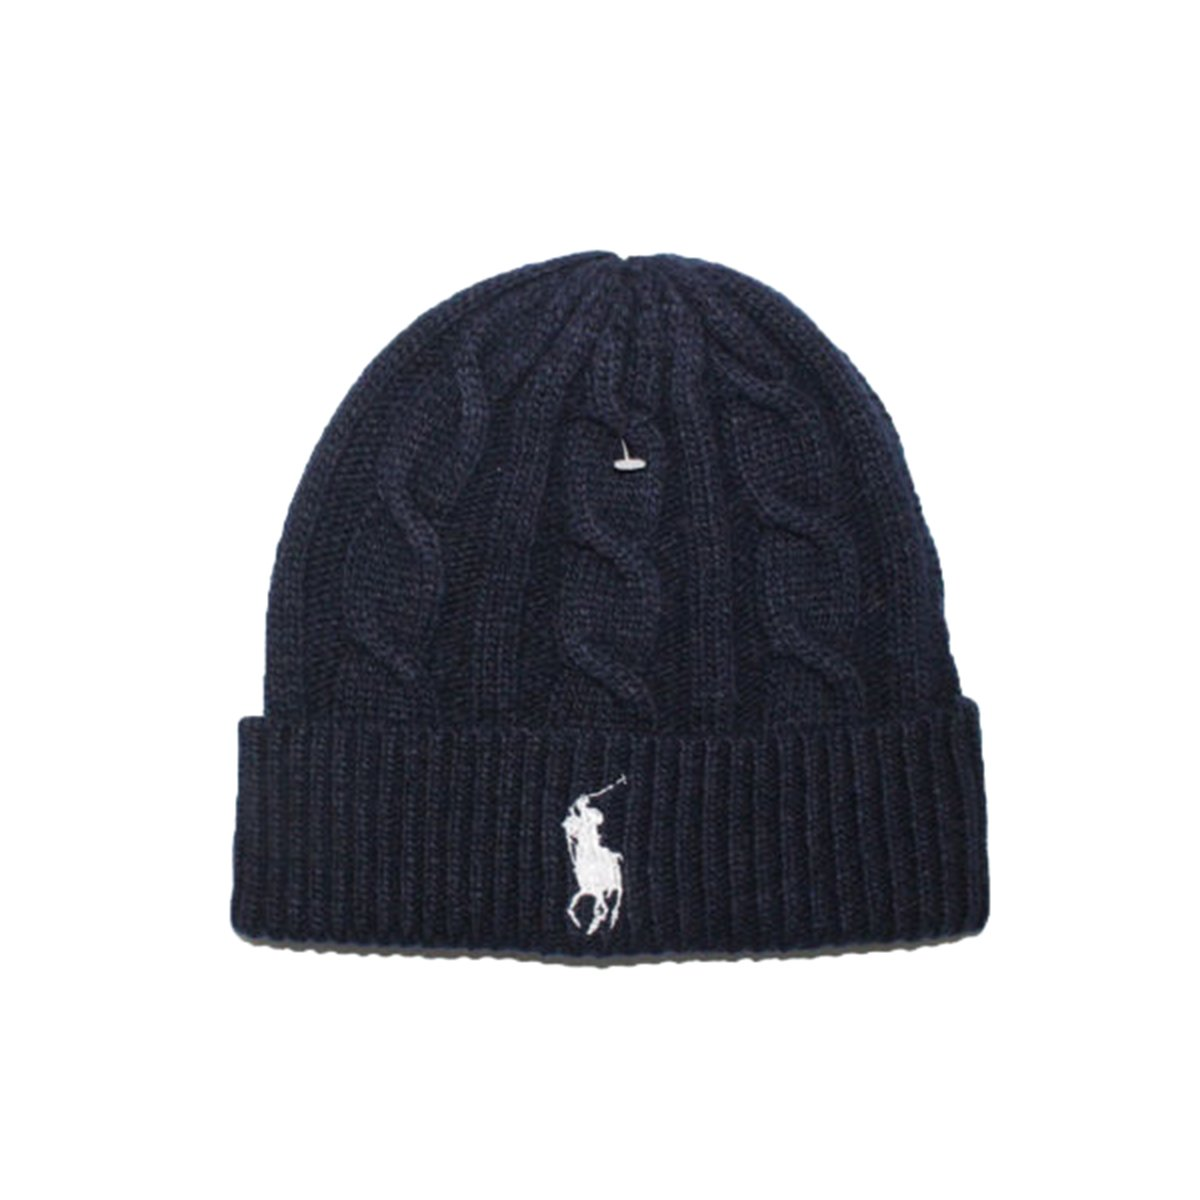 Generic Beanie Skull Cap Hip Hop Lambs Wool Men Women Polo Color Knit  Winter Ha (Black Red) at Amazon Women s Clothing store  bbe13372f61